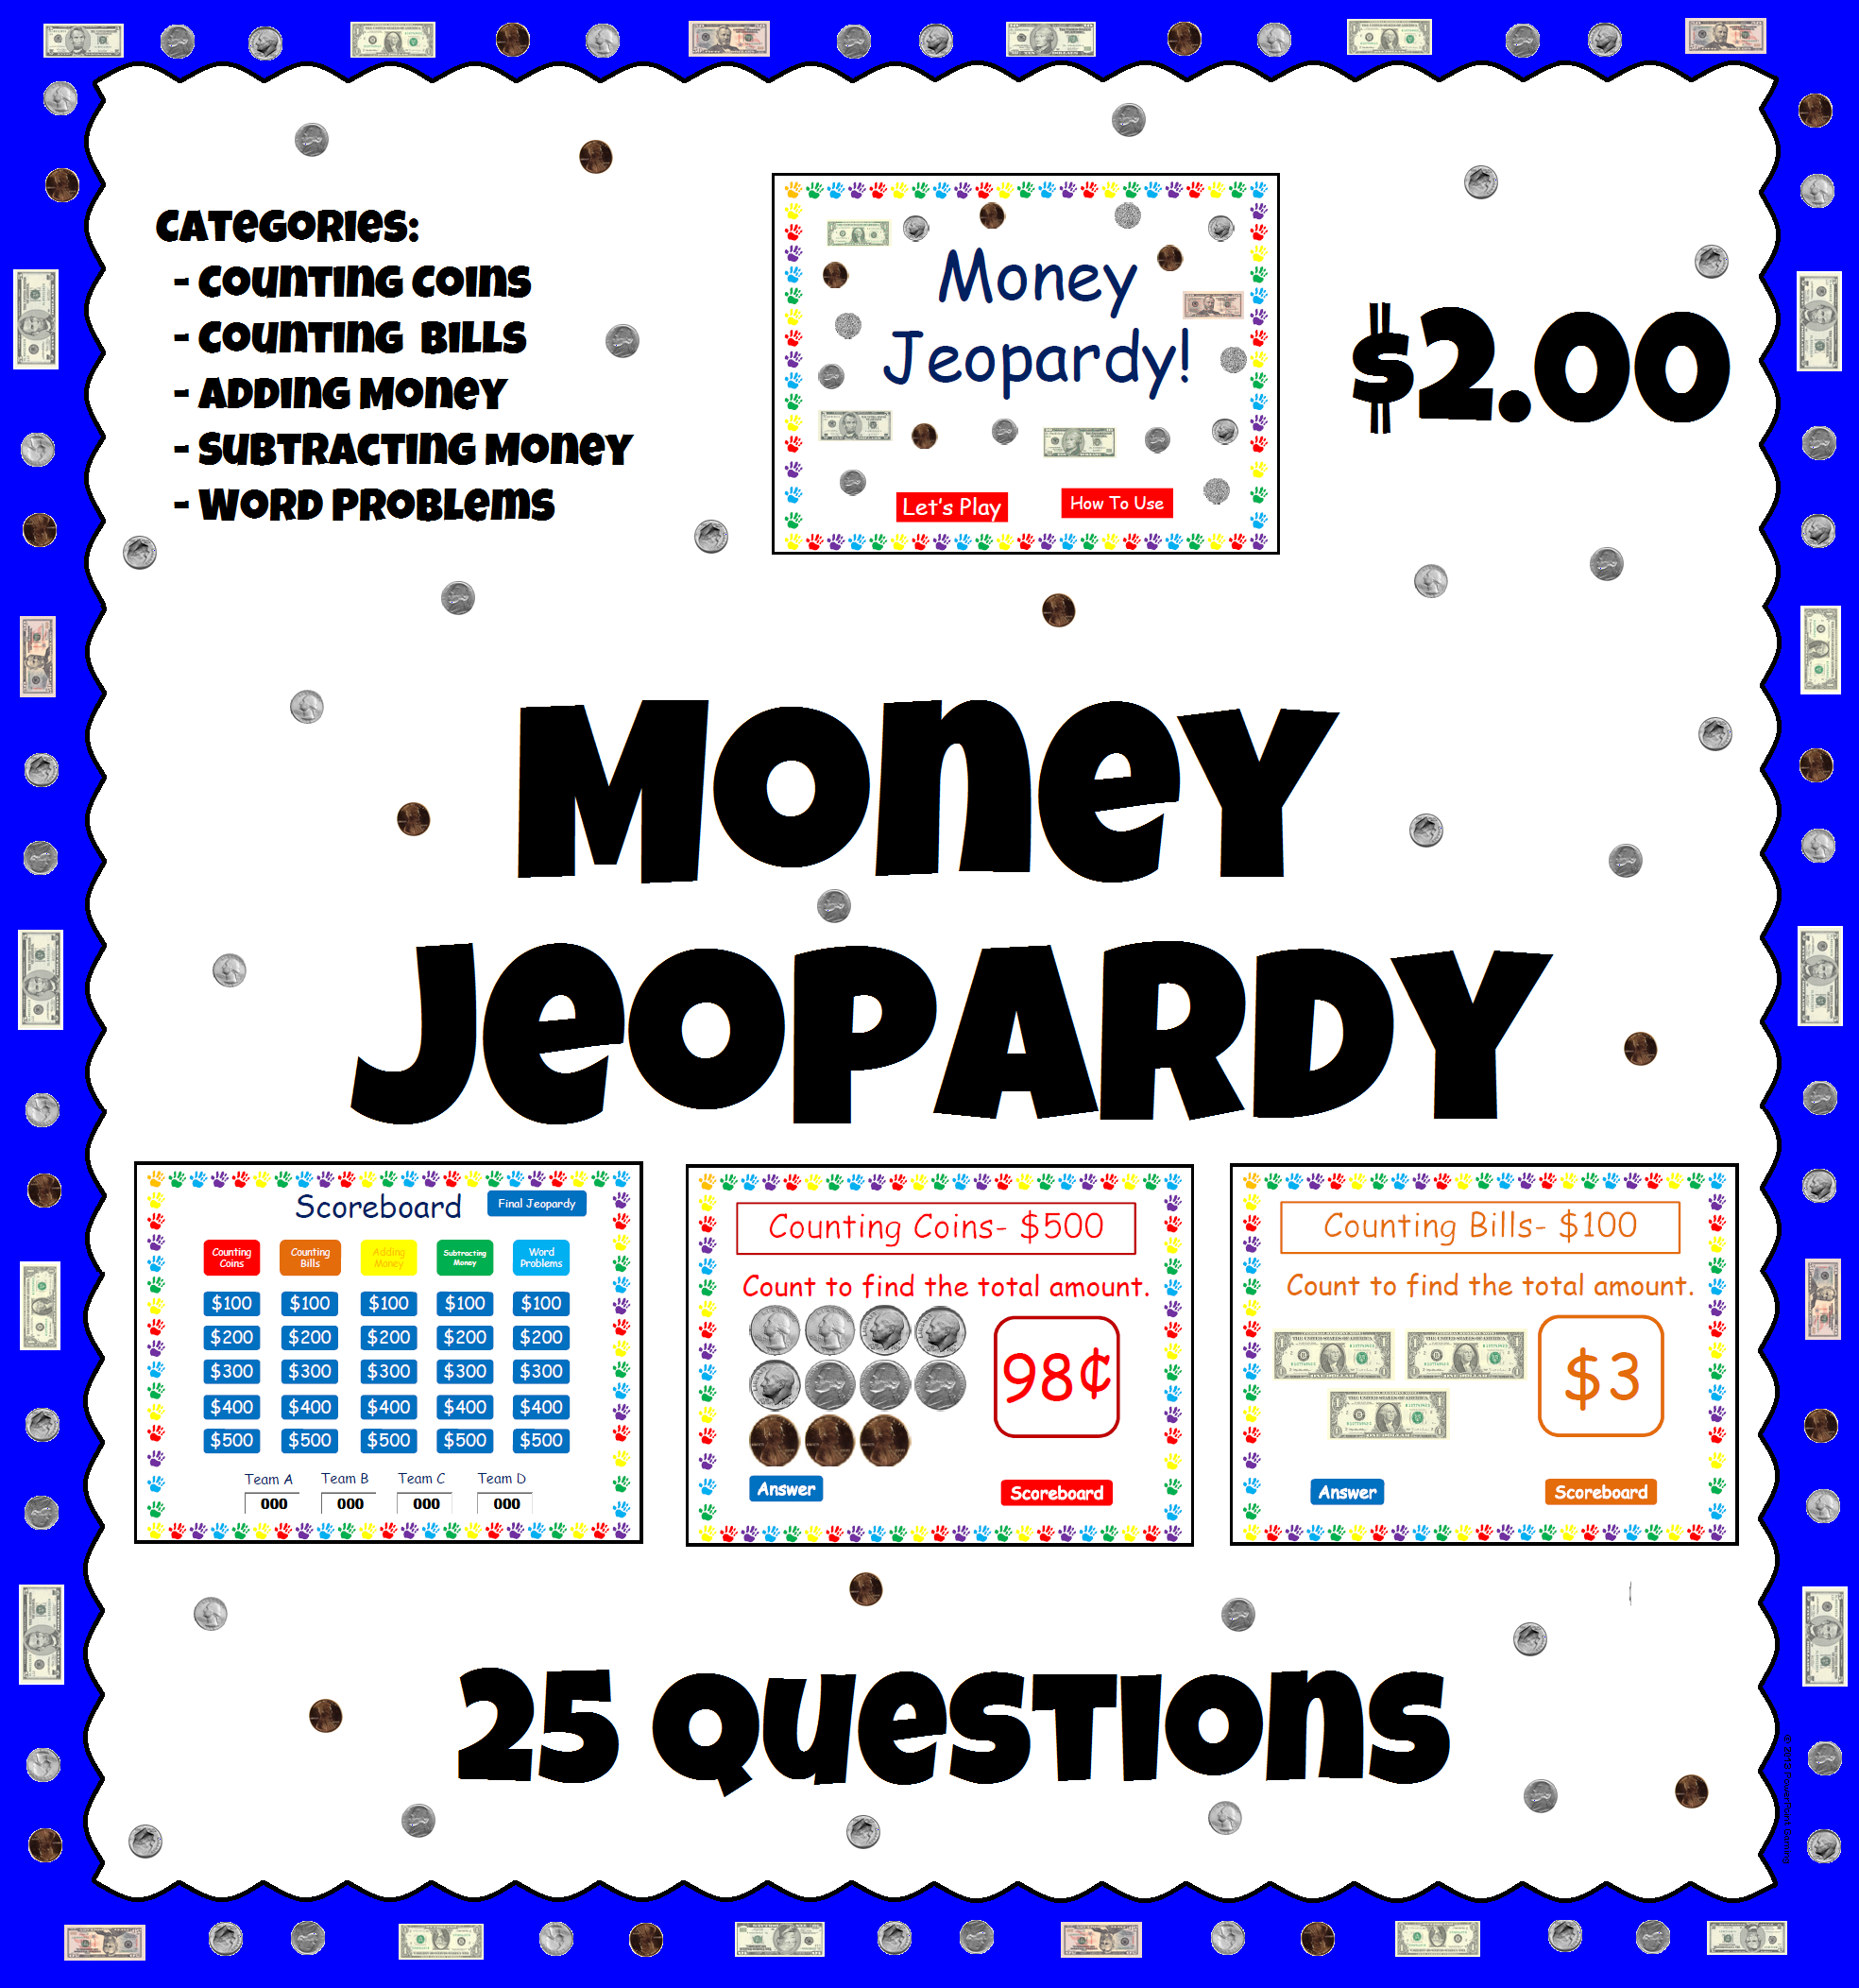 Money Powerpoint Game | Pinterest | Counting coins, Word problems ...